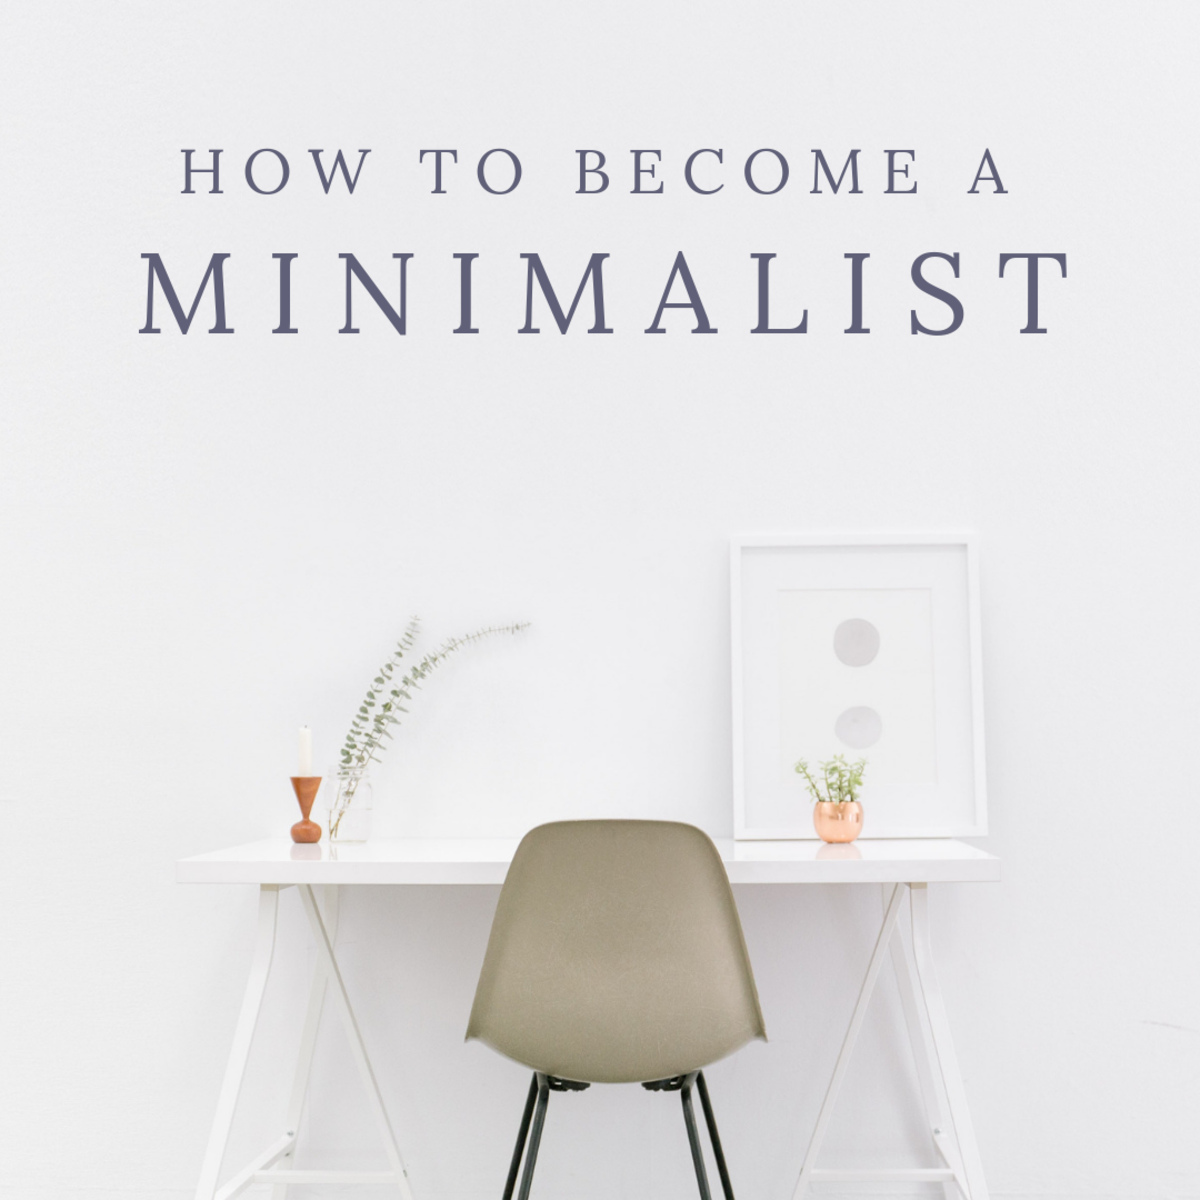 What Is Minimalism? How to Become a Minimalist